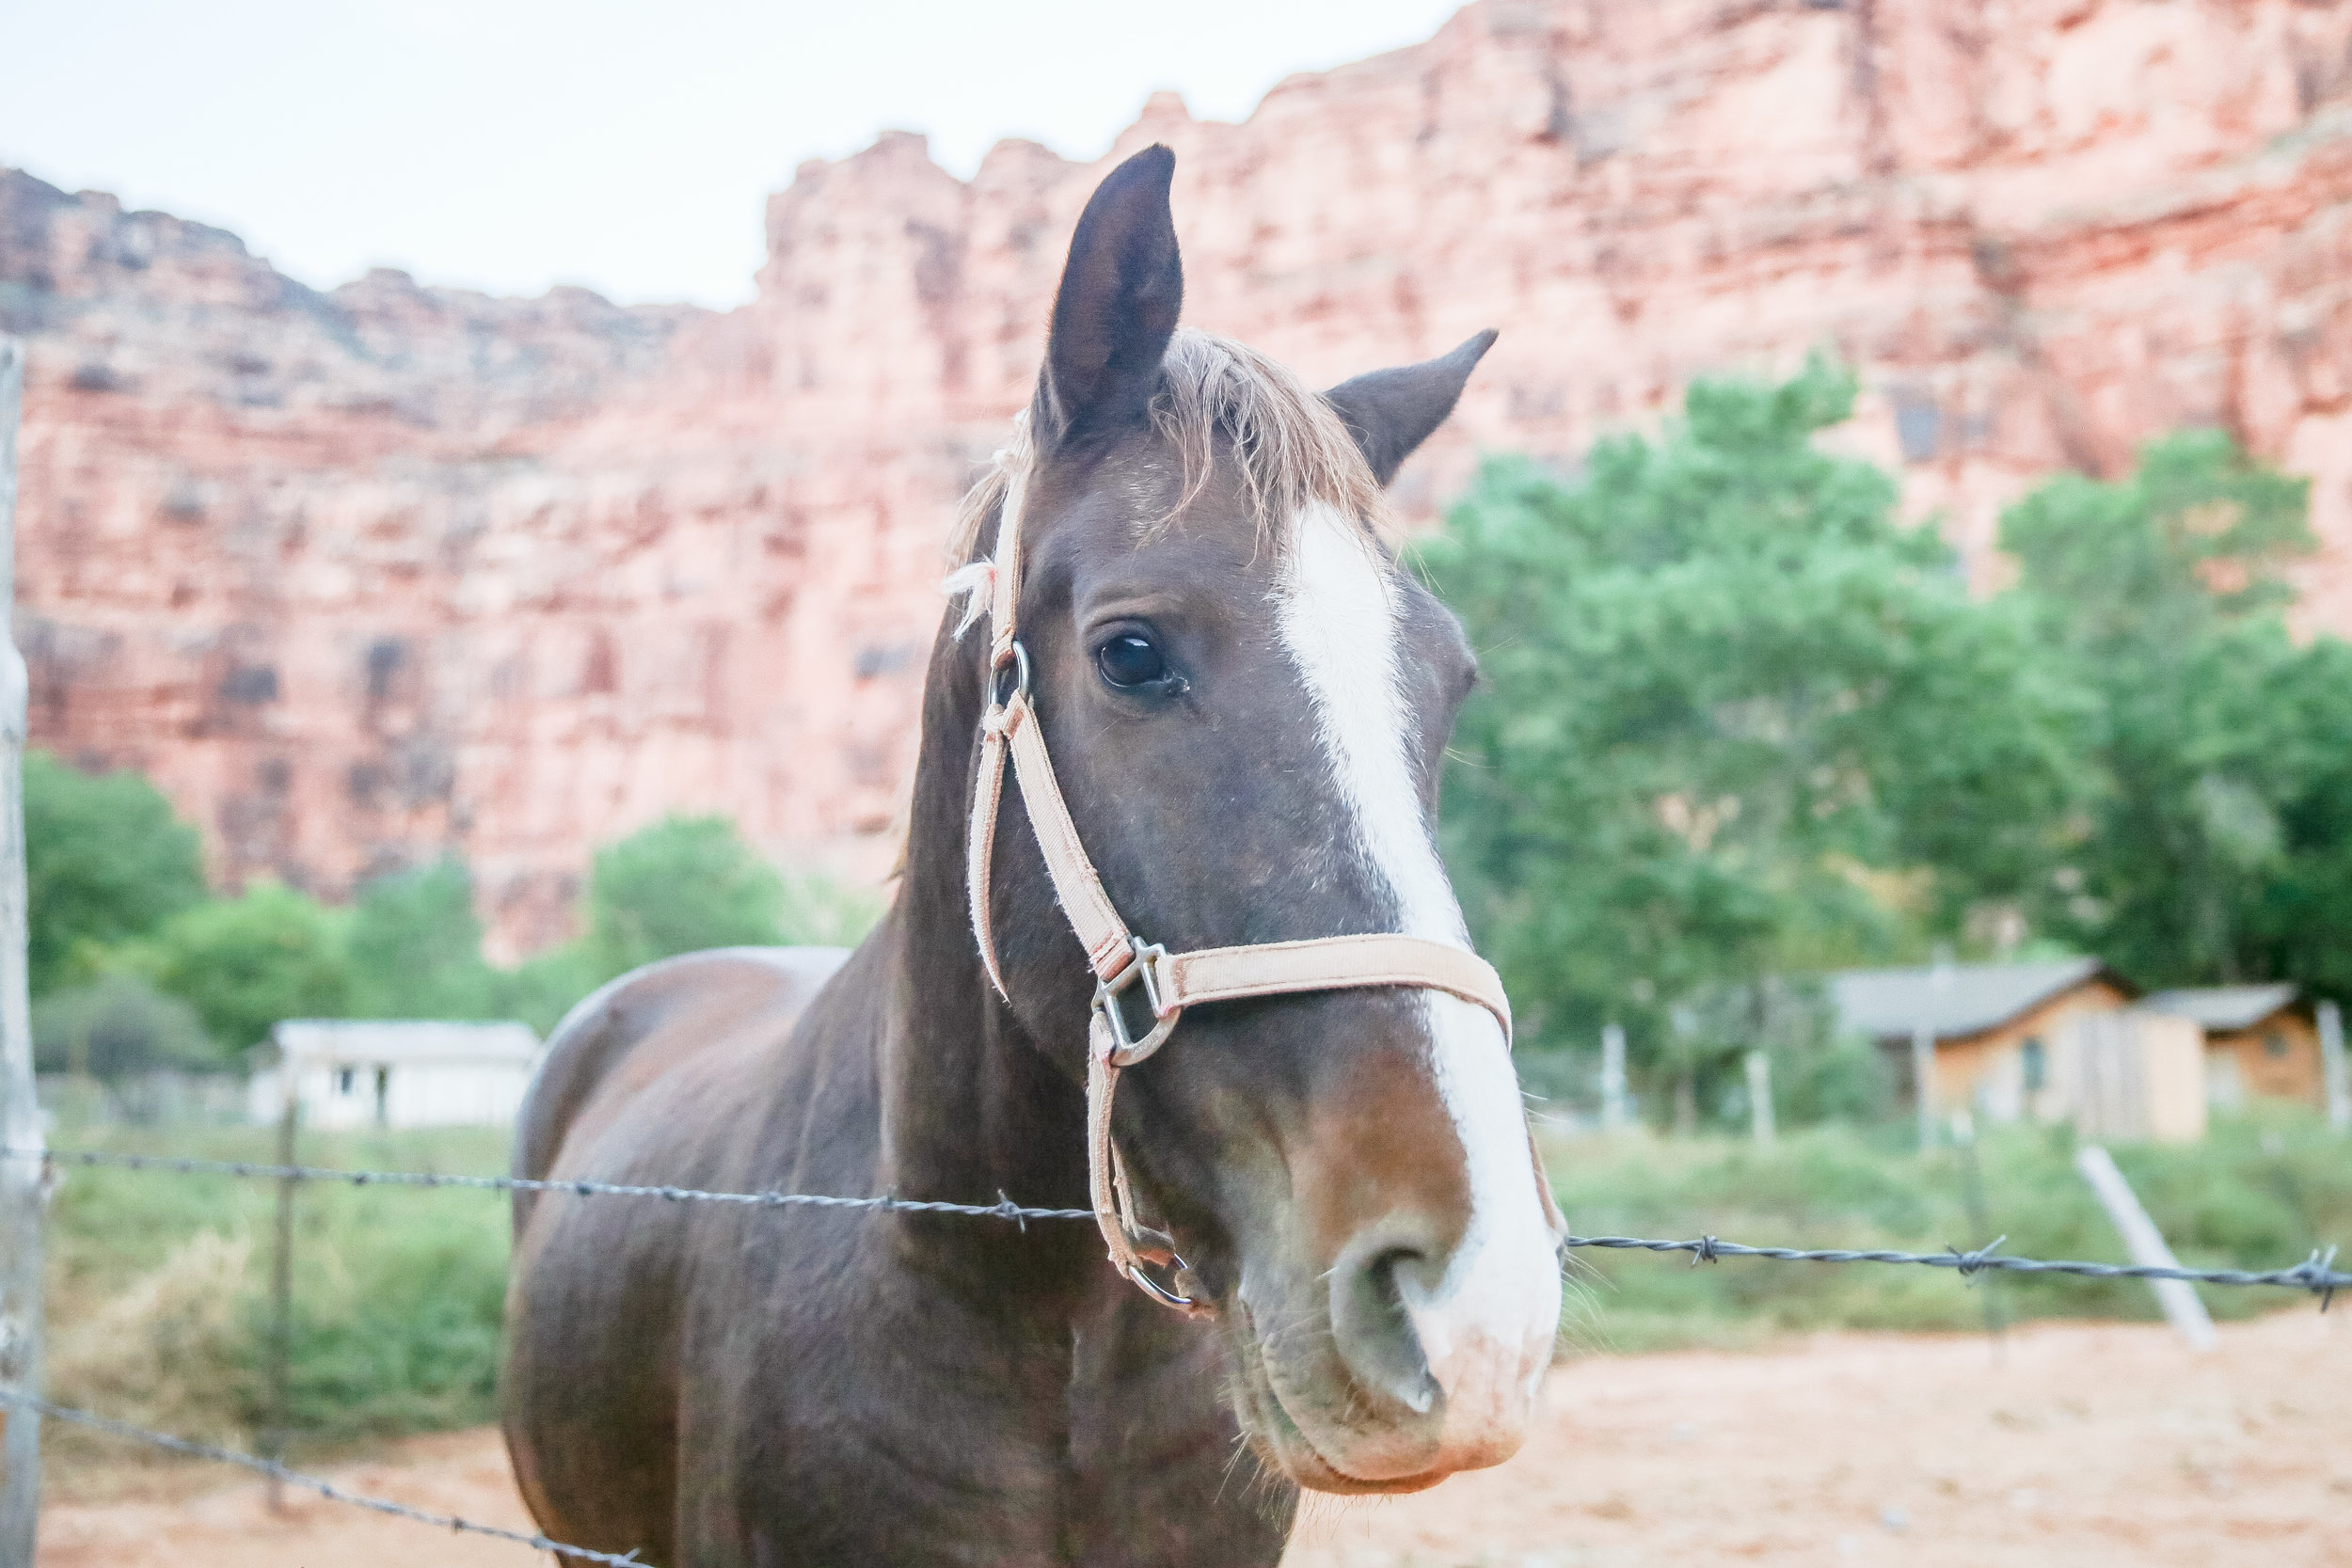 """I wanted to take this cutie home with me.   Every time we see a horse, Benny can't help but ask """"Why the long face?"""" heheheh"""